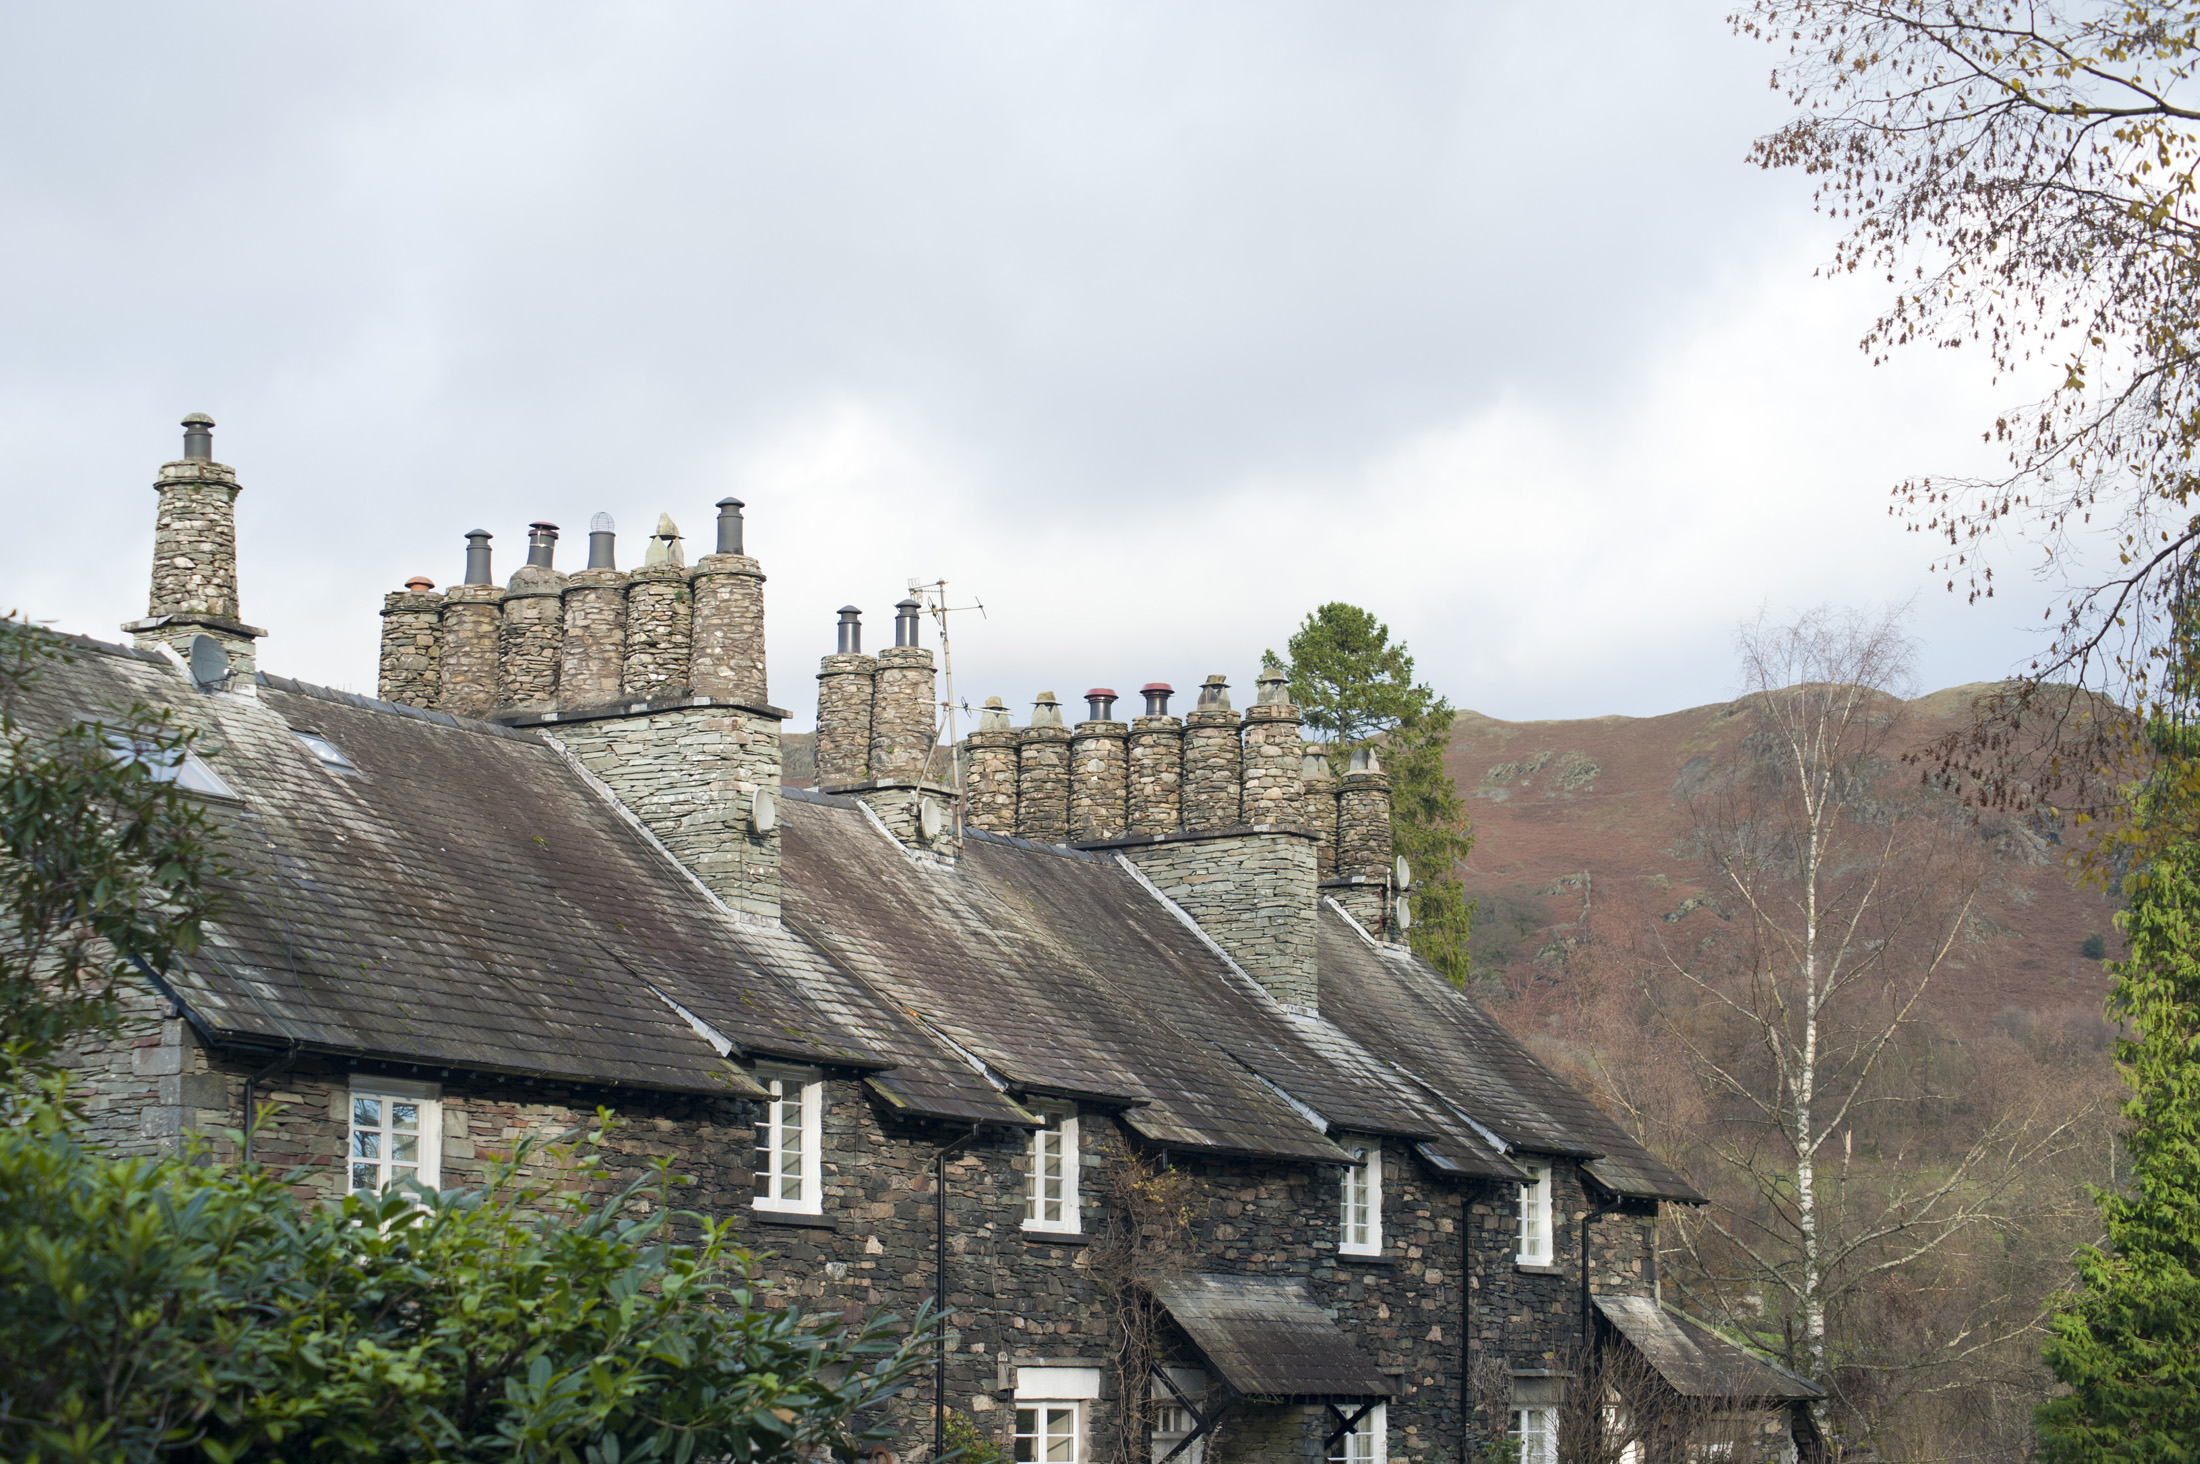 Row of quaint stone cottages at Skelwith Bridge in the Lake District with traditional cylindrical chimney pots made of stone in a leafy green lane